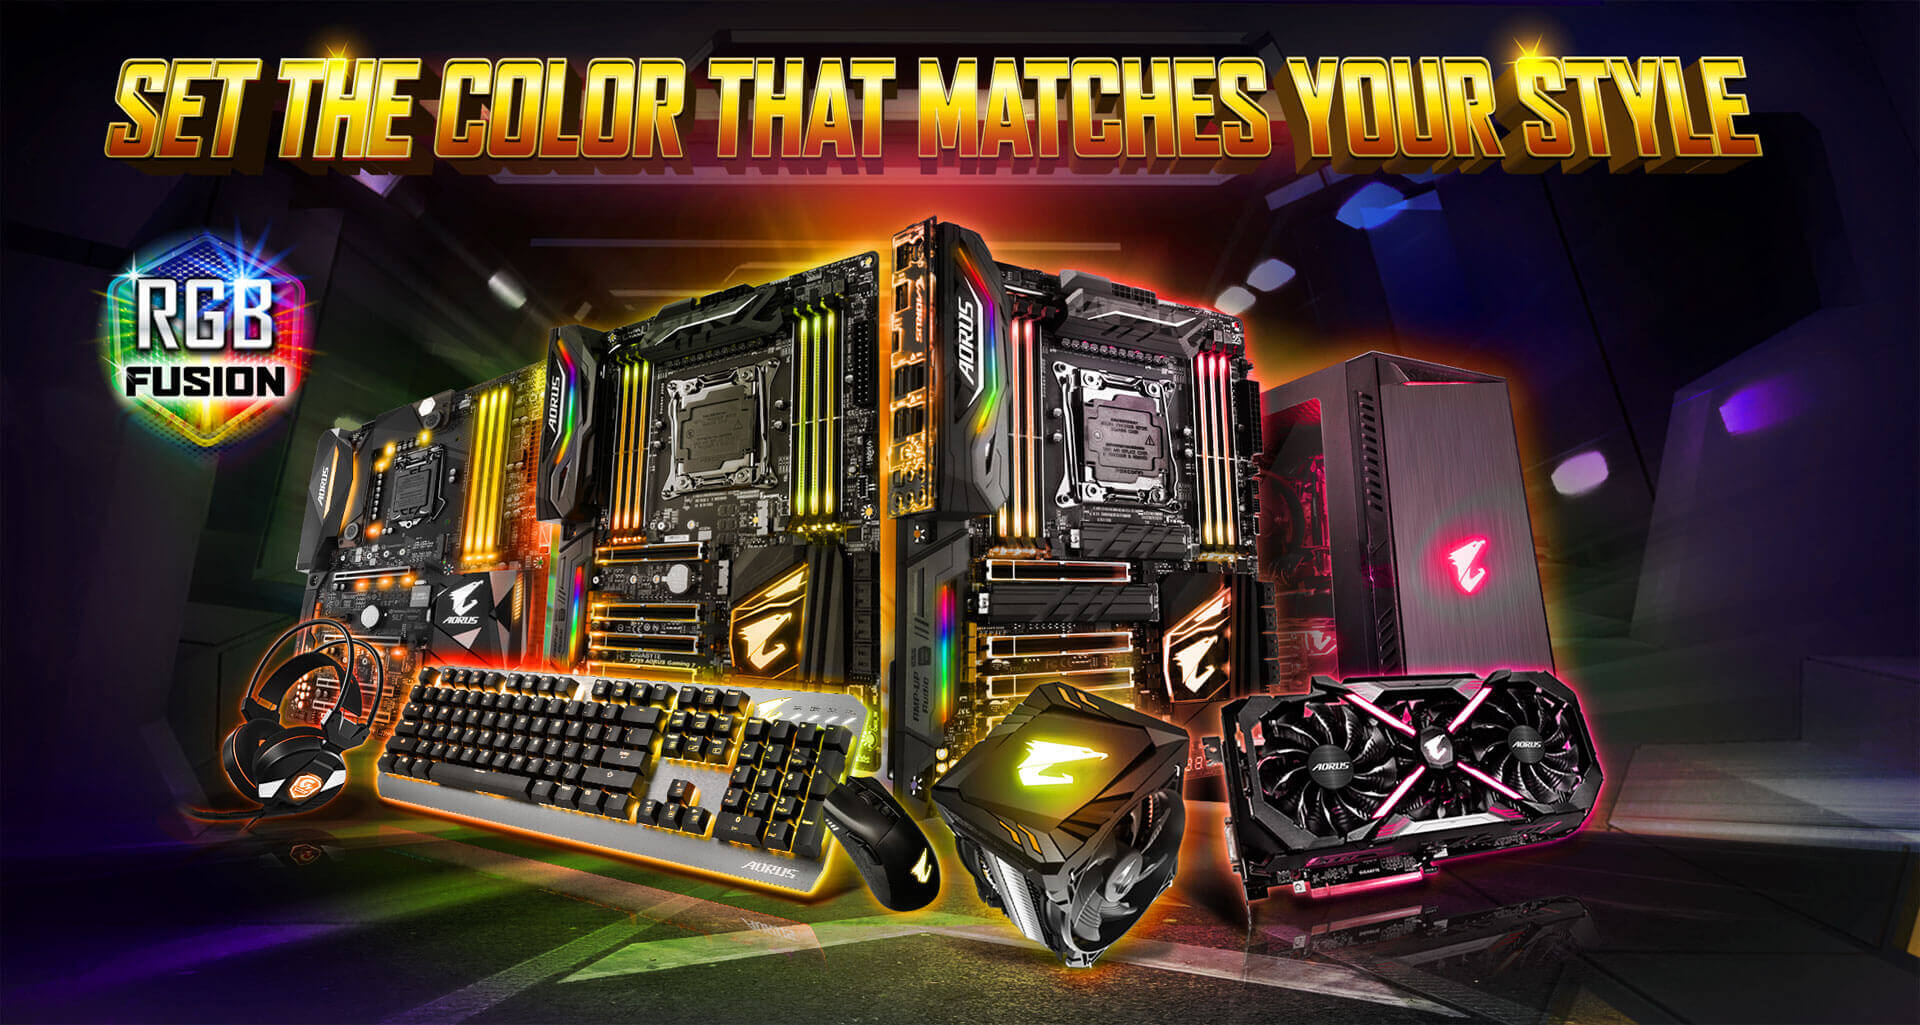 Z370 Aorus Gaming 7 Rev 10 Motherboard Gigabyte Global Peak Electronic Design Limited Ethernet Wiring Diagrams Patch With A Dazzling Array Of Products Supported Rgb Fusion Is The Software That Brings It All Together Letting Your Accessories Synchronize To Same Beat